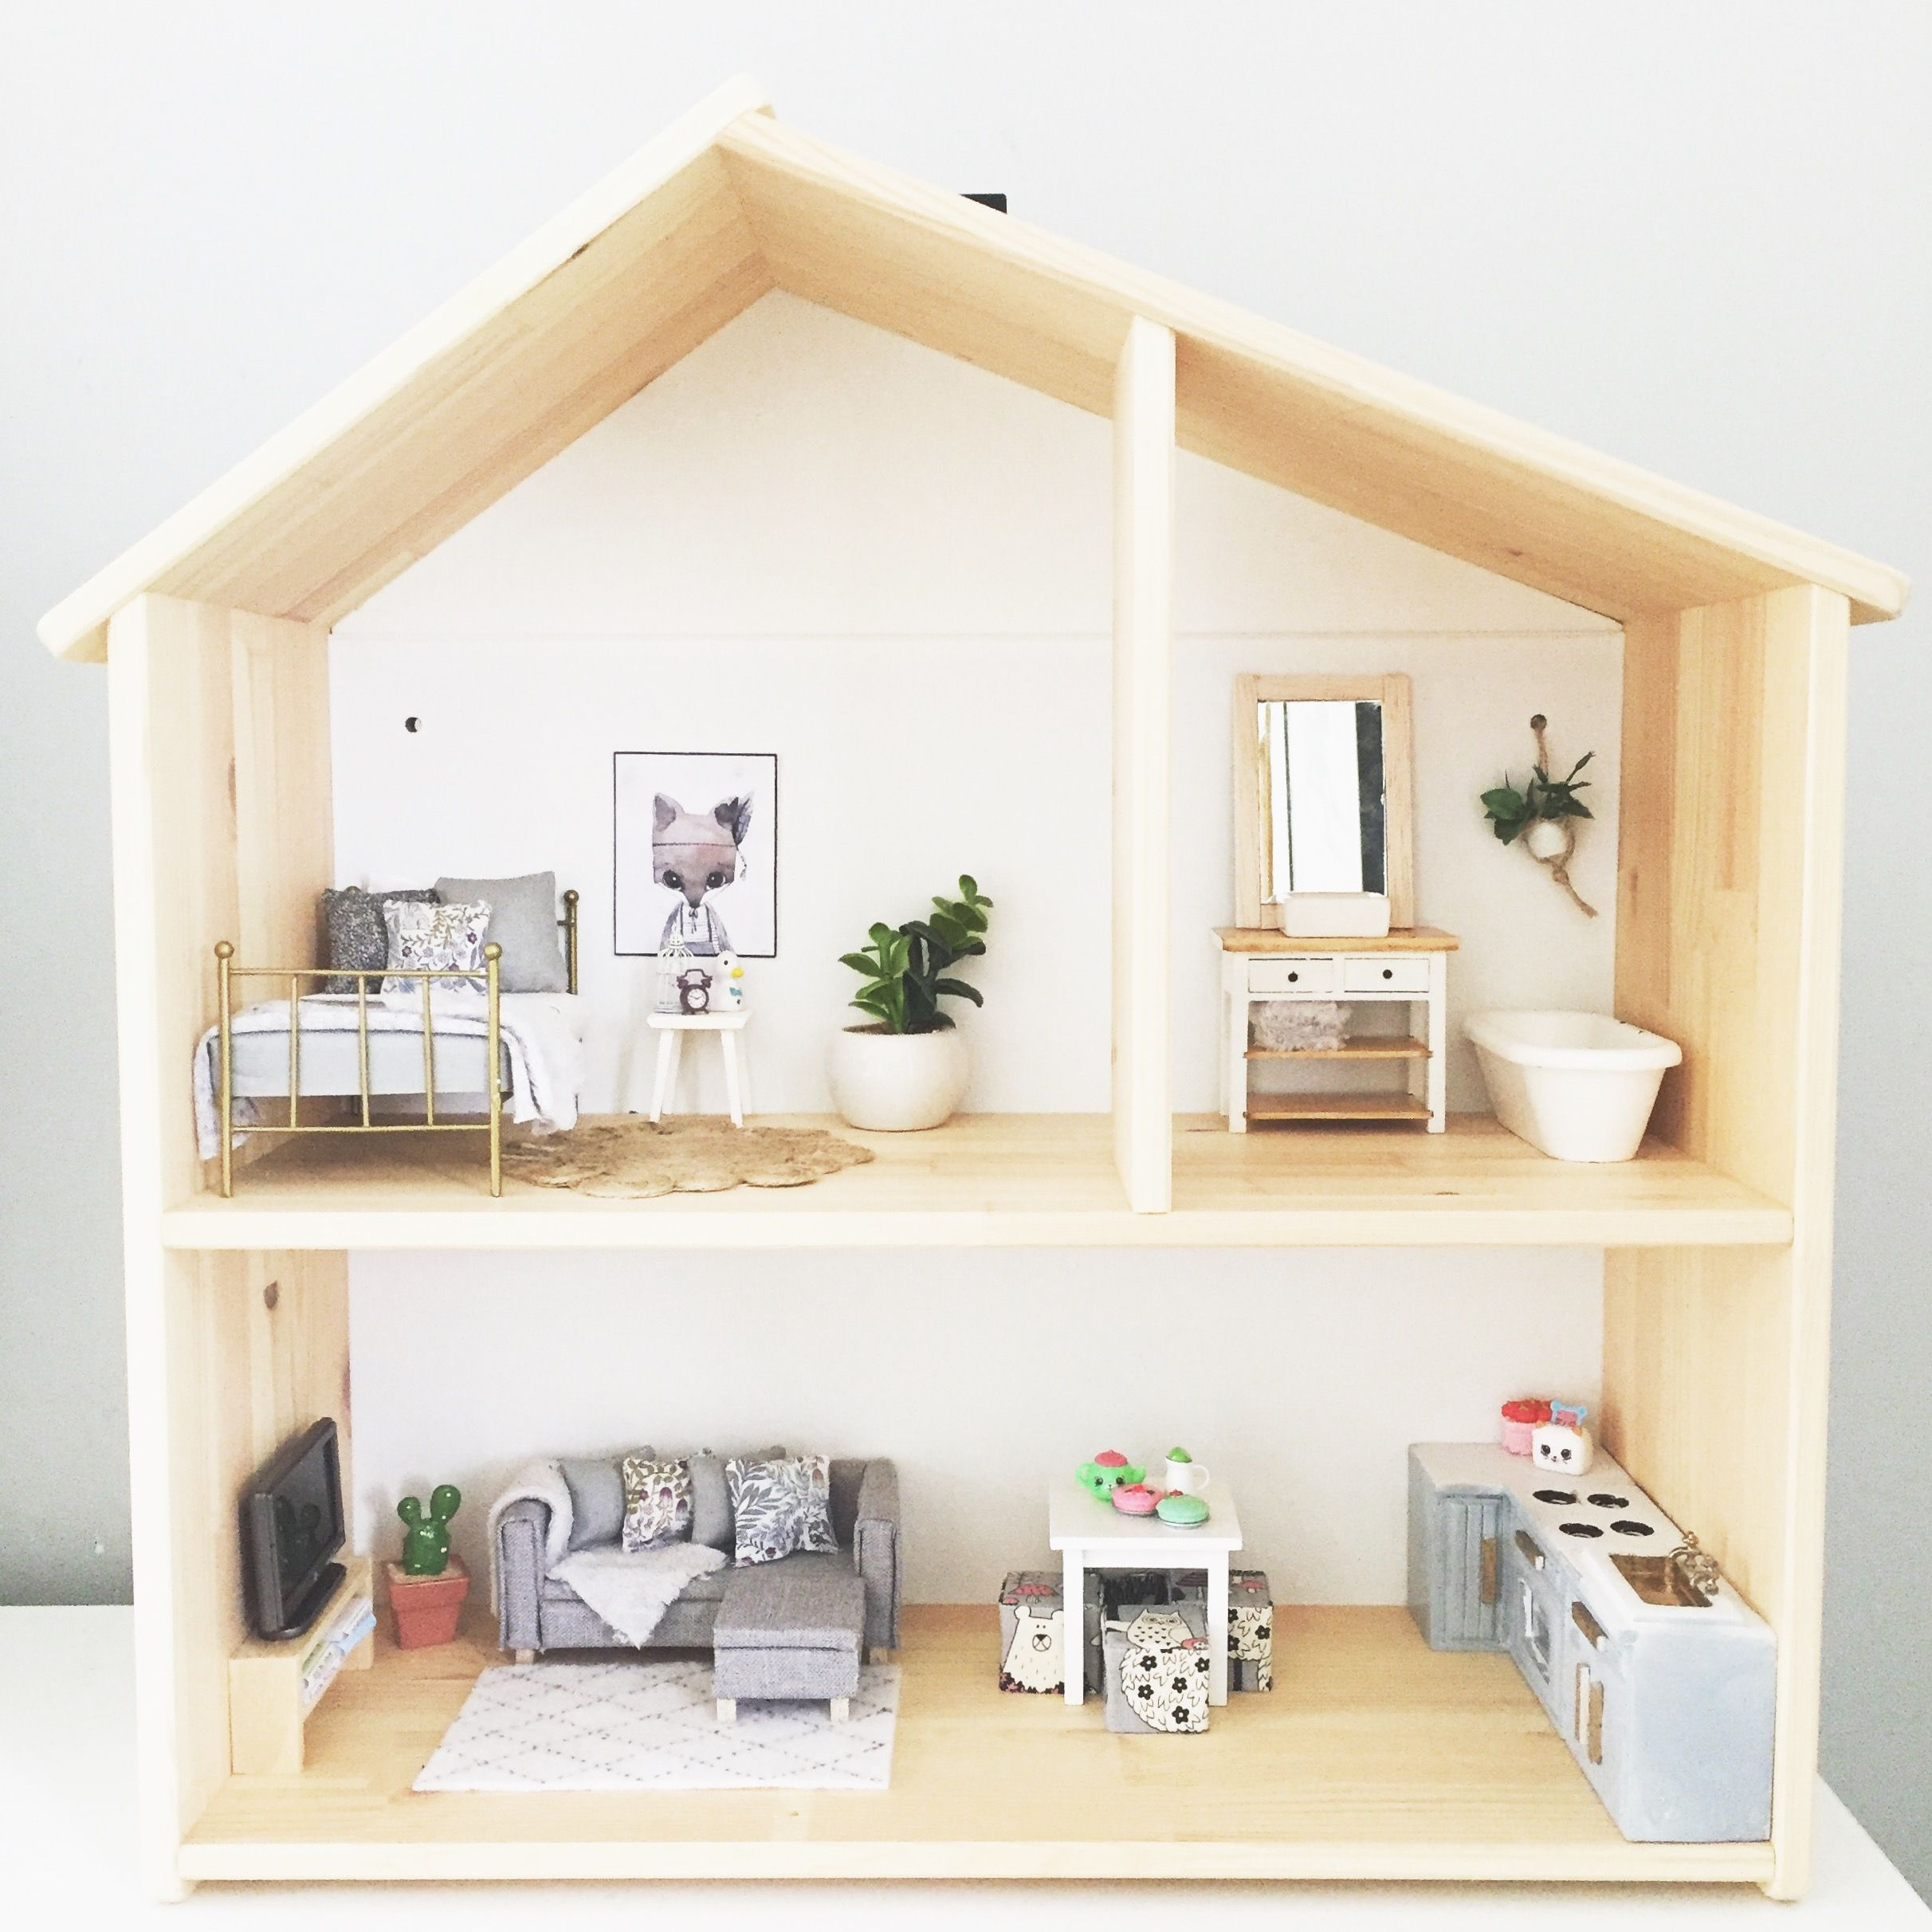 Ikea flisat modern dolls house renovation in 1 12 scale - Casa delle bambole ikea ...